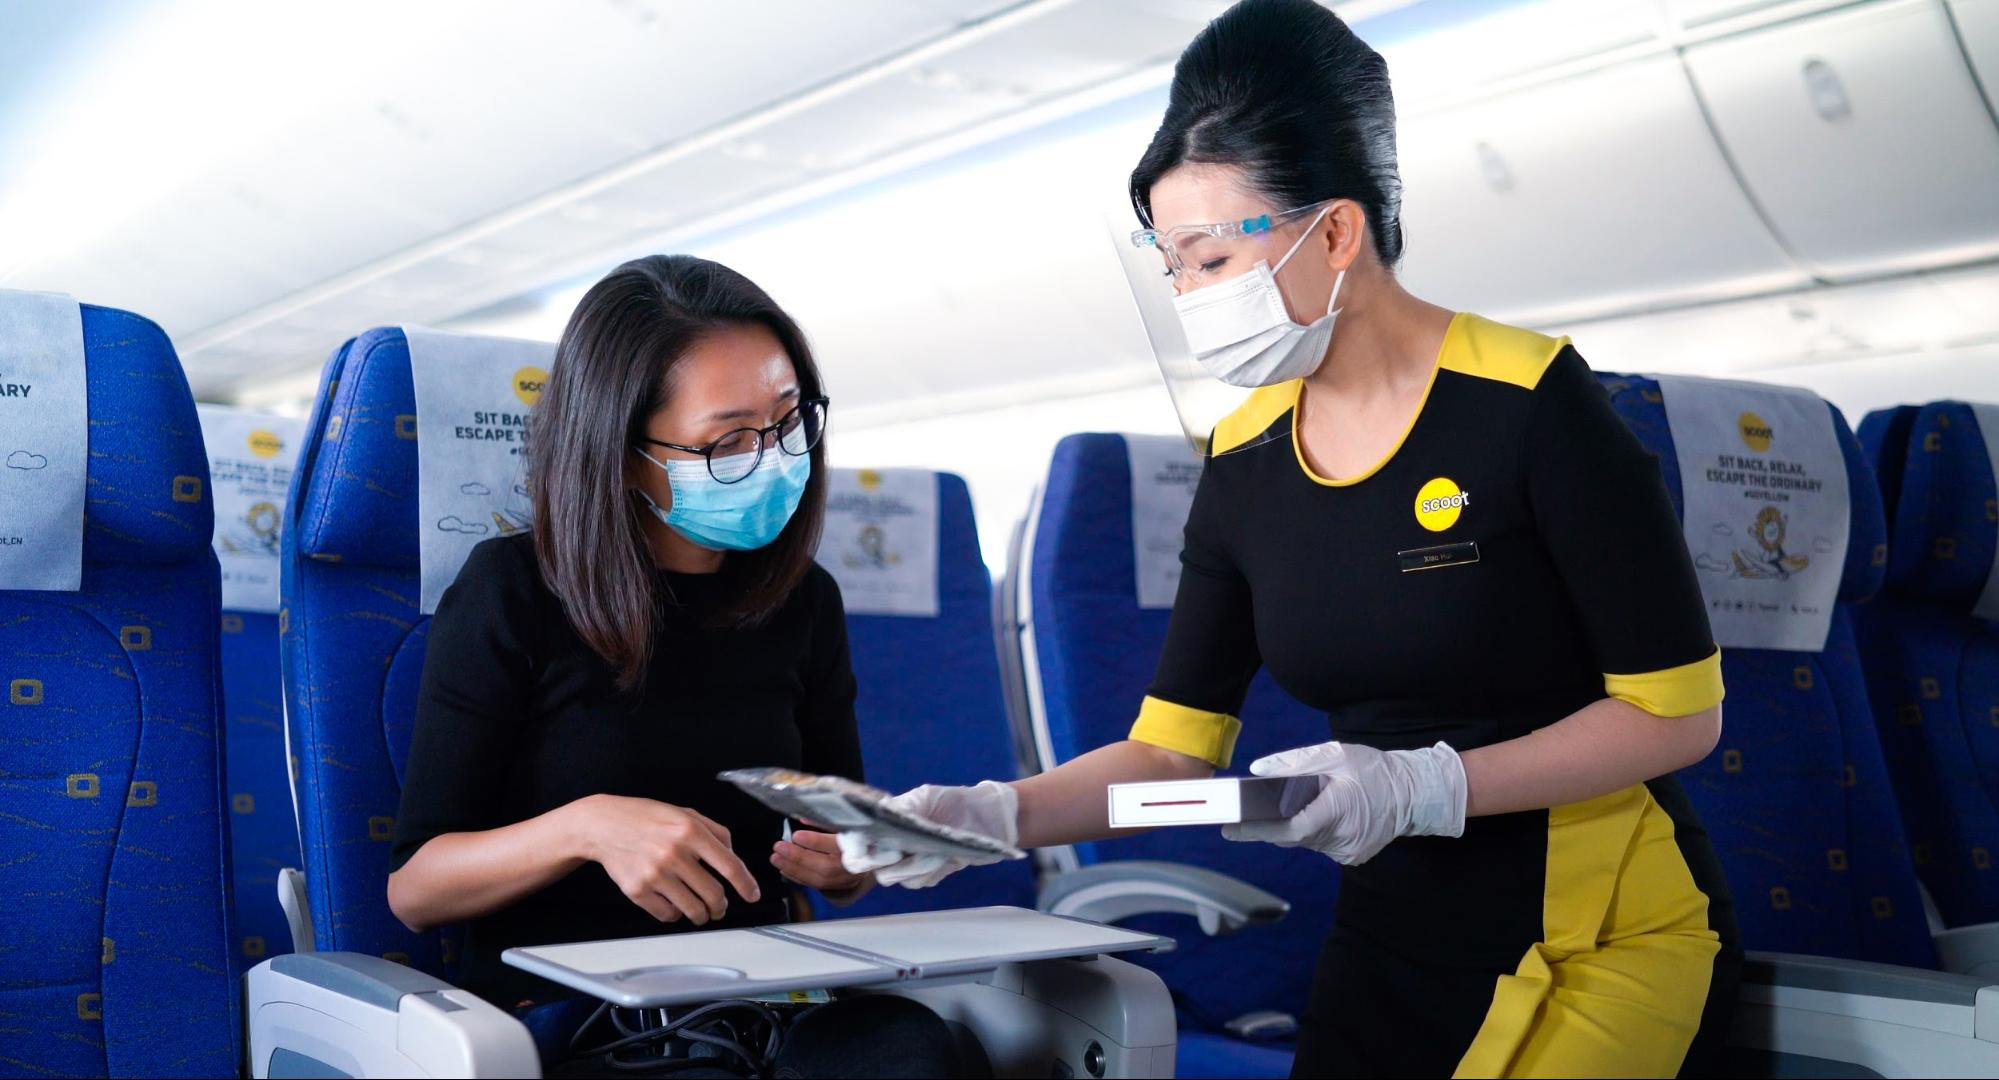 cabin crew delivering duty free purchases